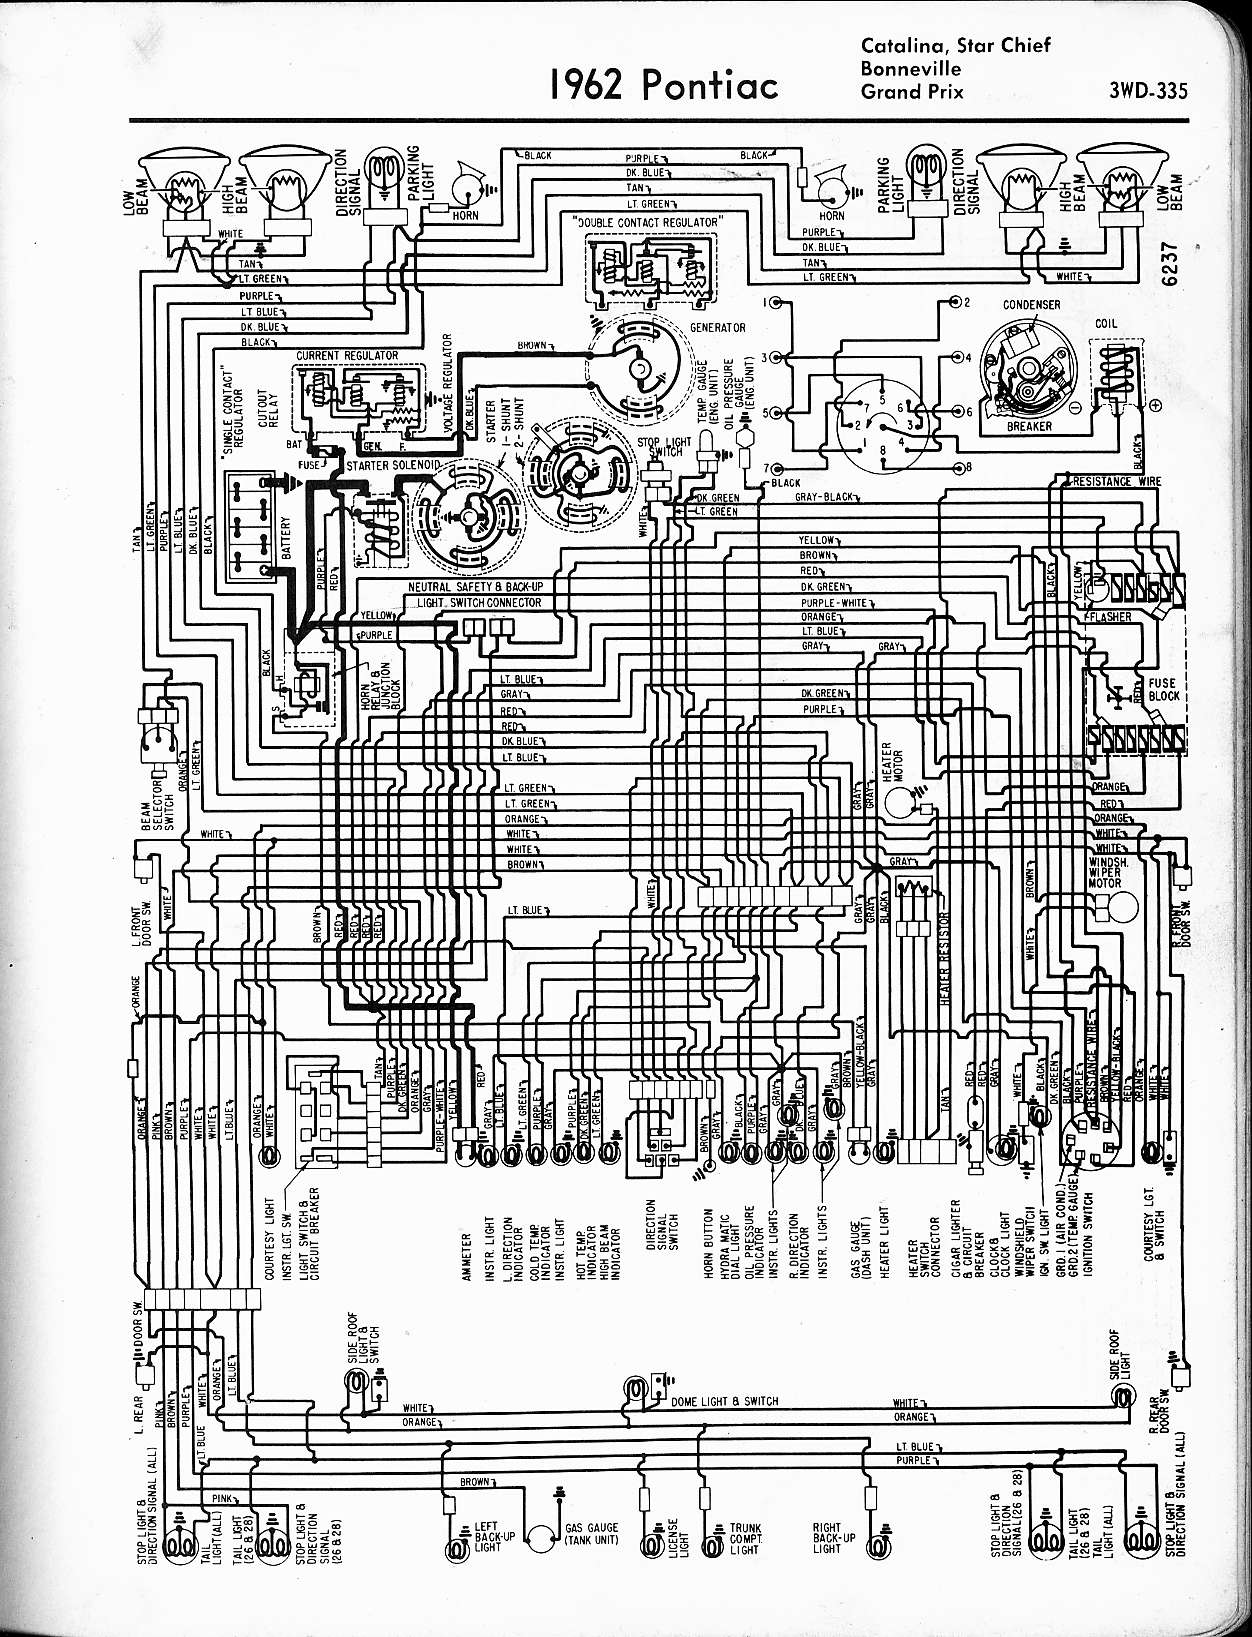 wallace racing wiring diagrams rh wallaceracing com 95 Firebird Wiring Diagram 2003 Pontiac Grand AM Wiring Diagram